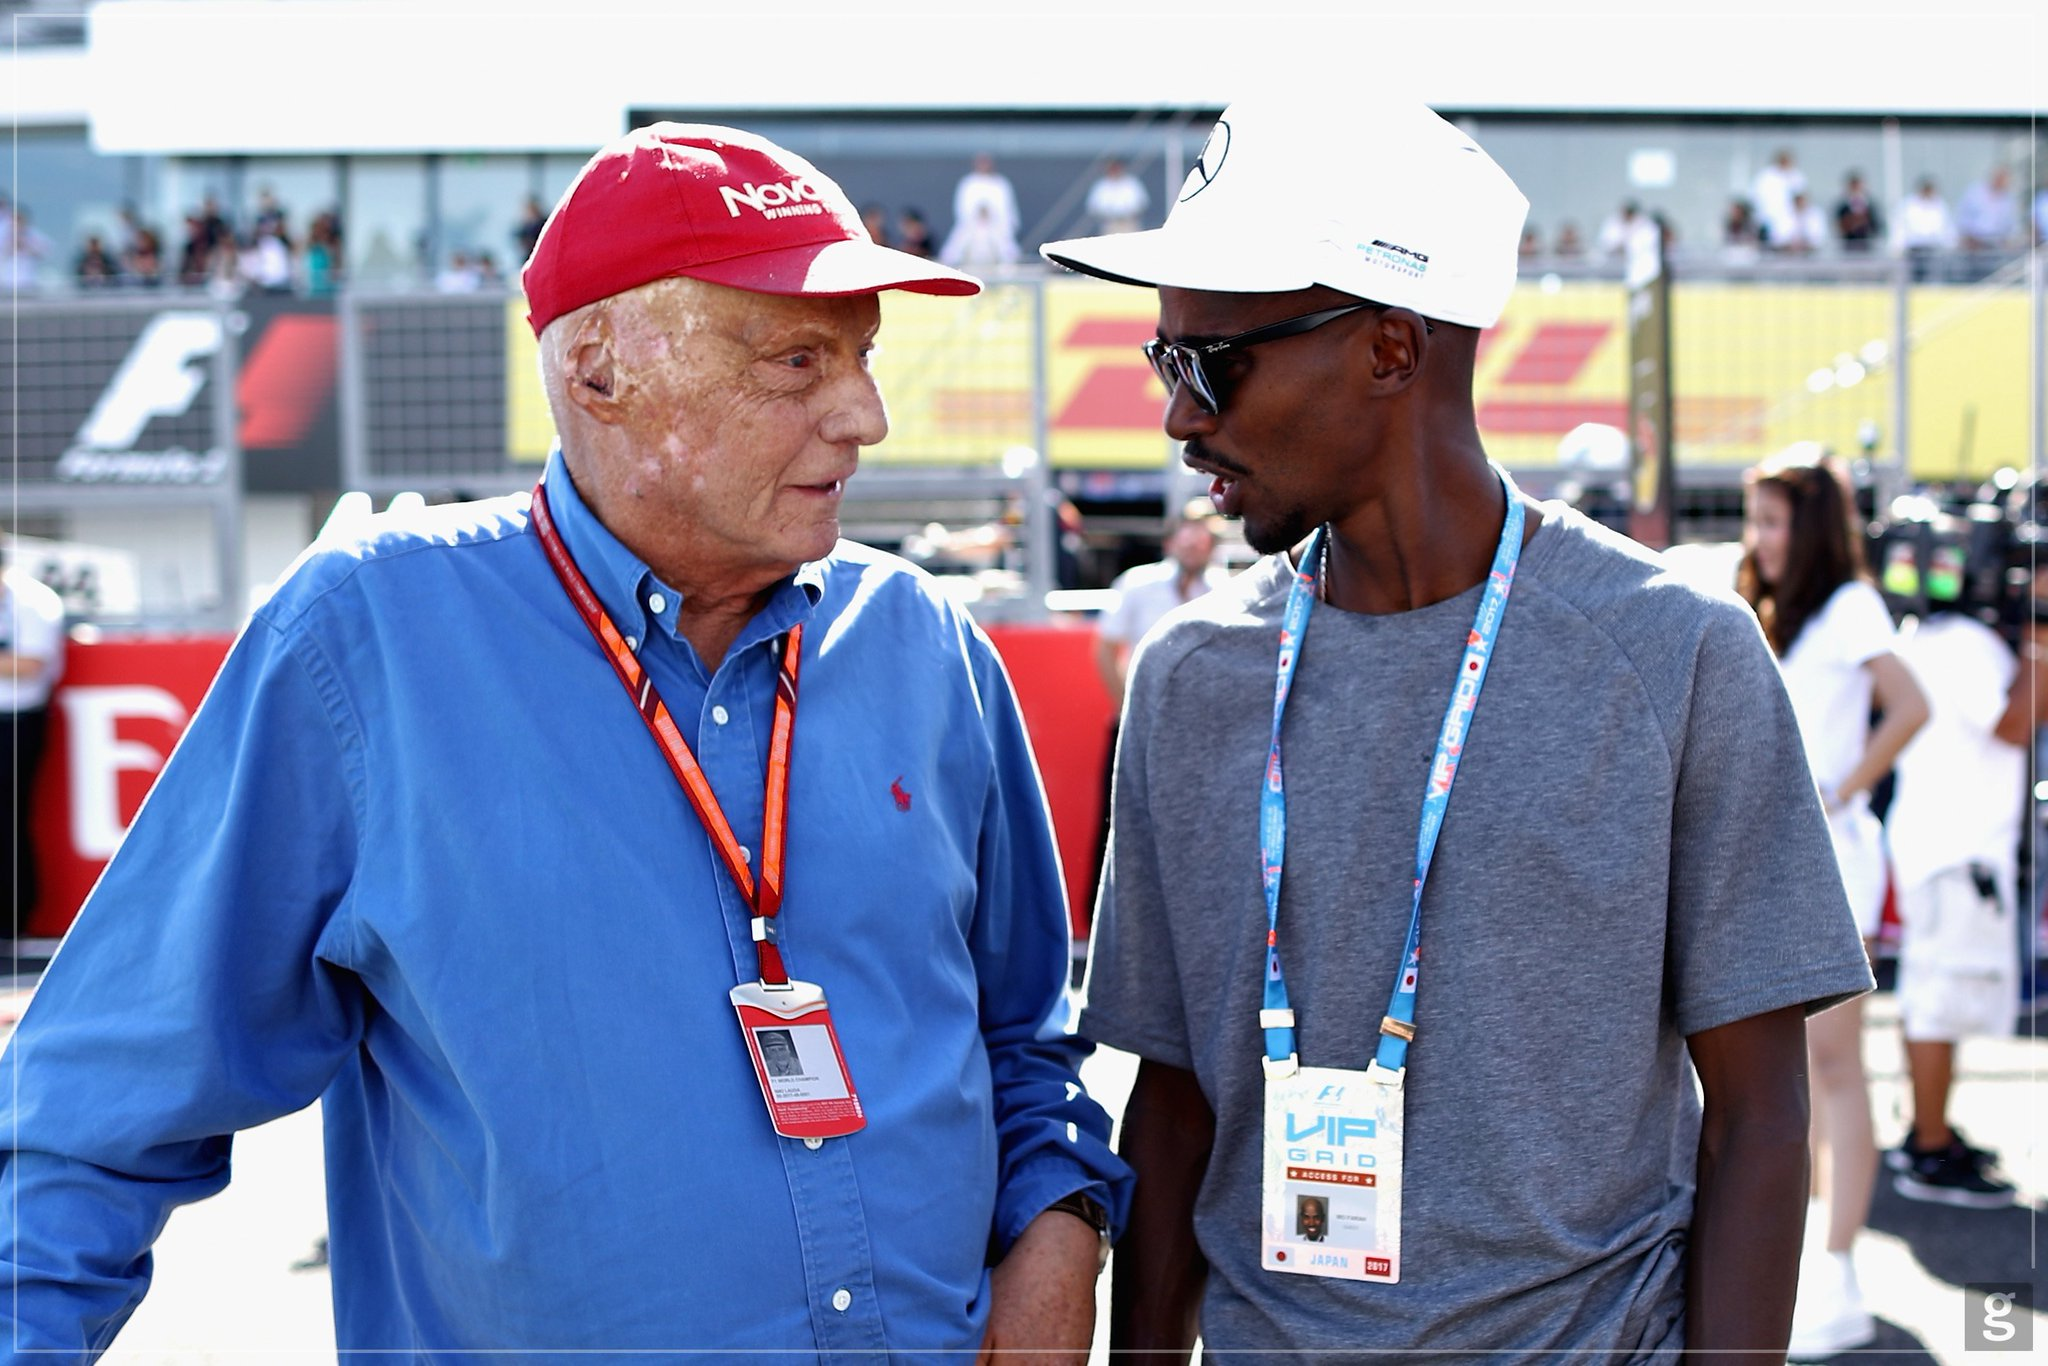 Amazing to have a chat with Great man Niki Lauda!!! https://t.co/uQtUsdExTF